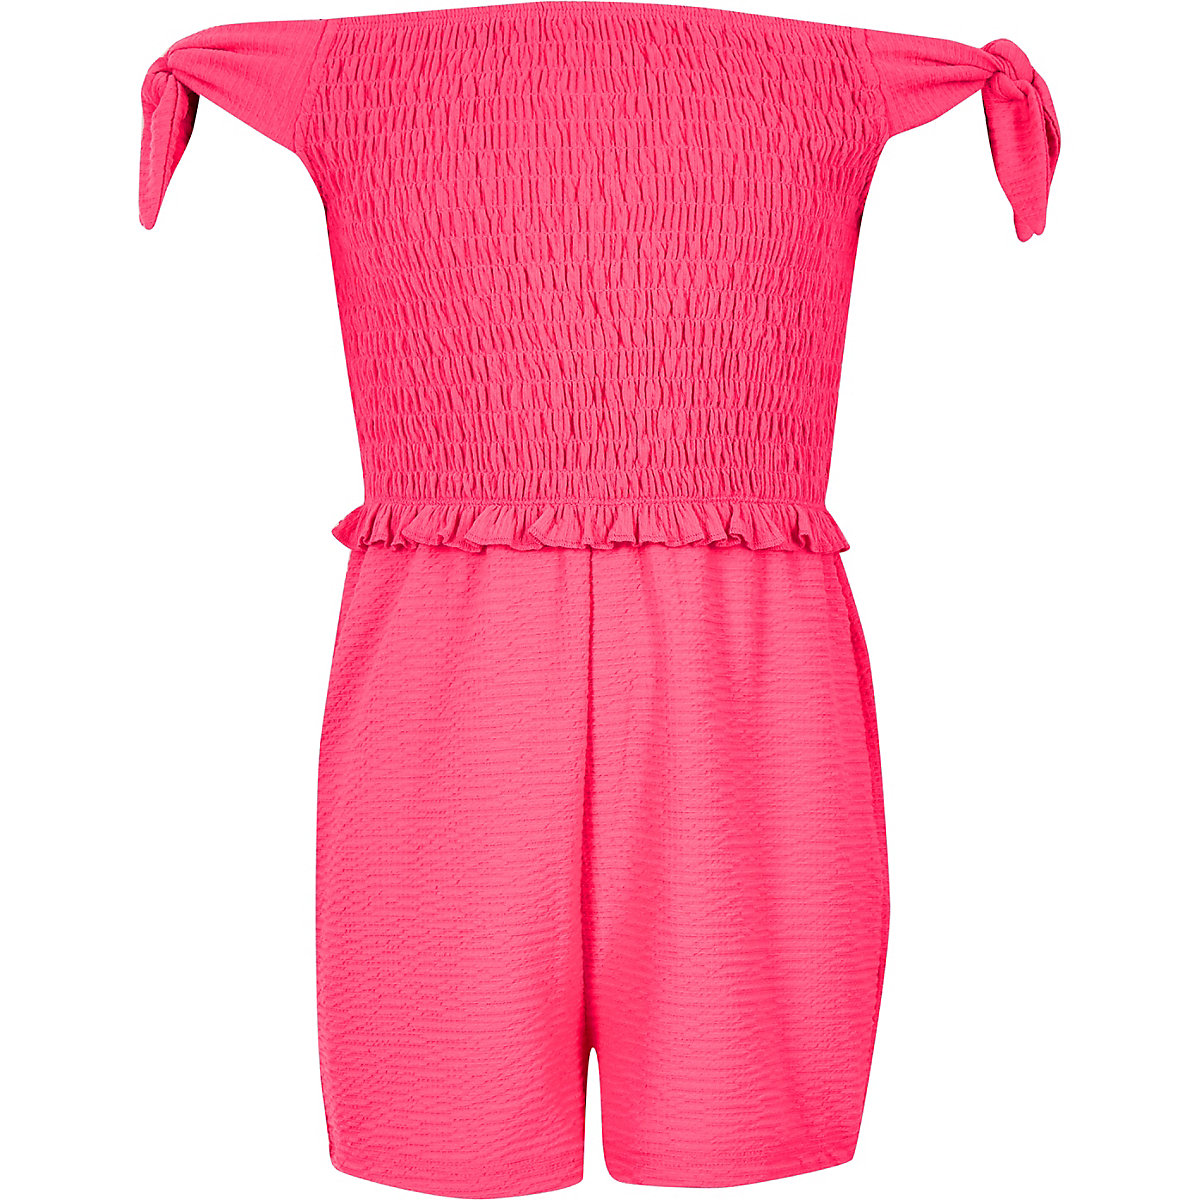 Girls neon pink shirred bardot romper